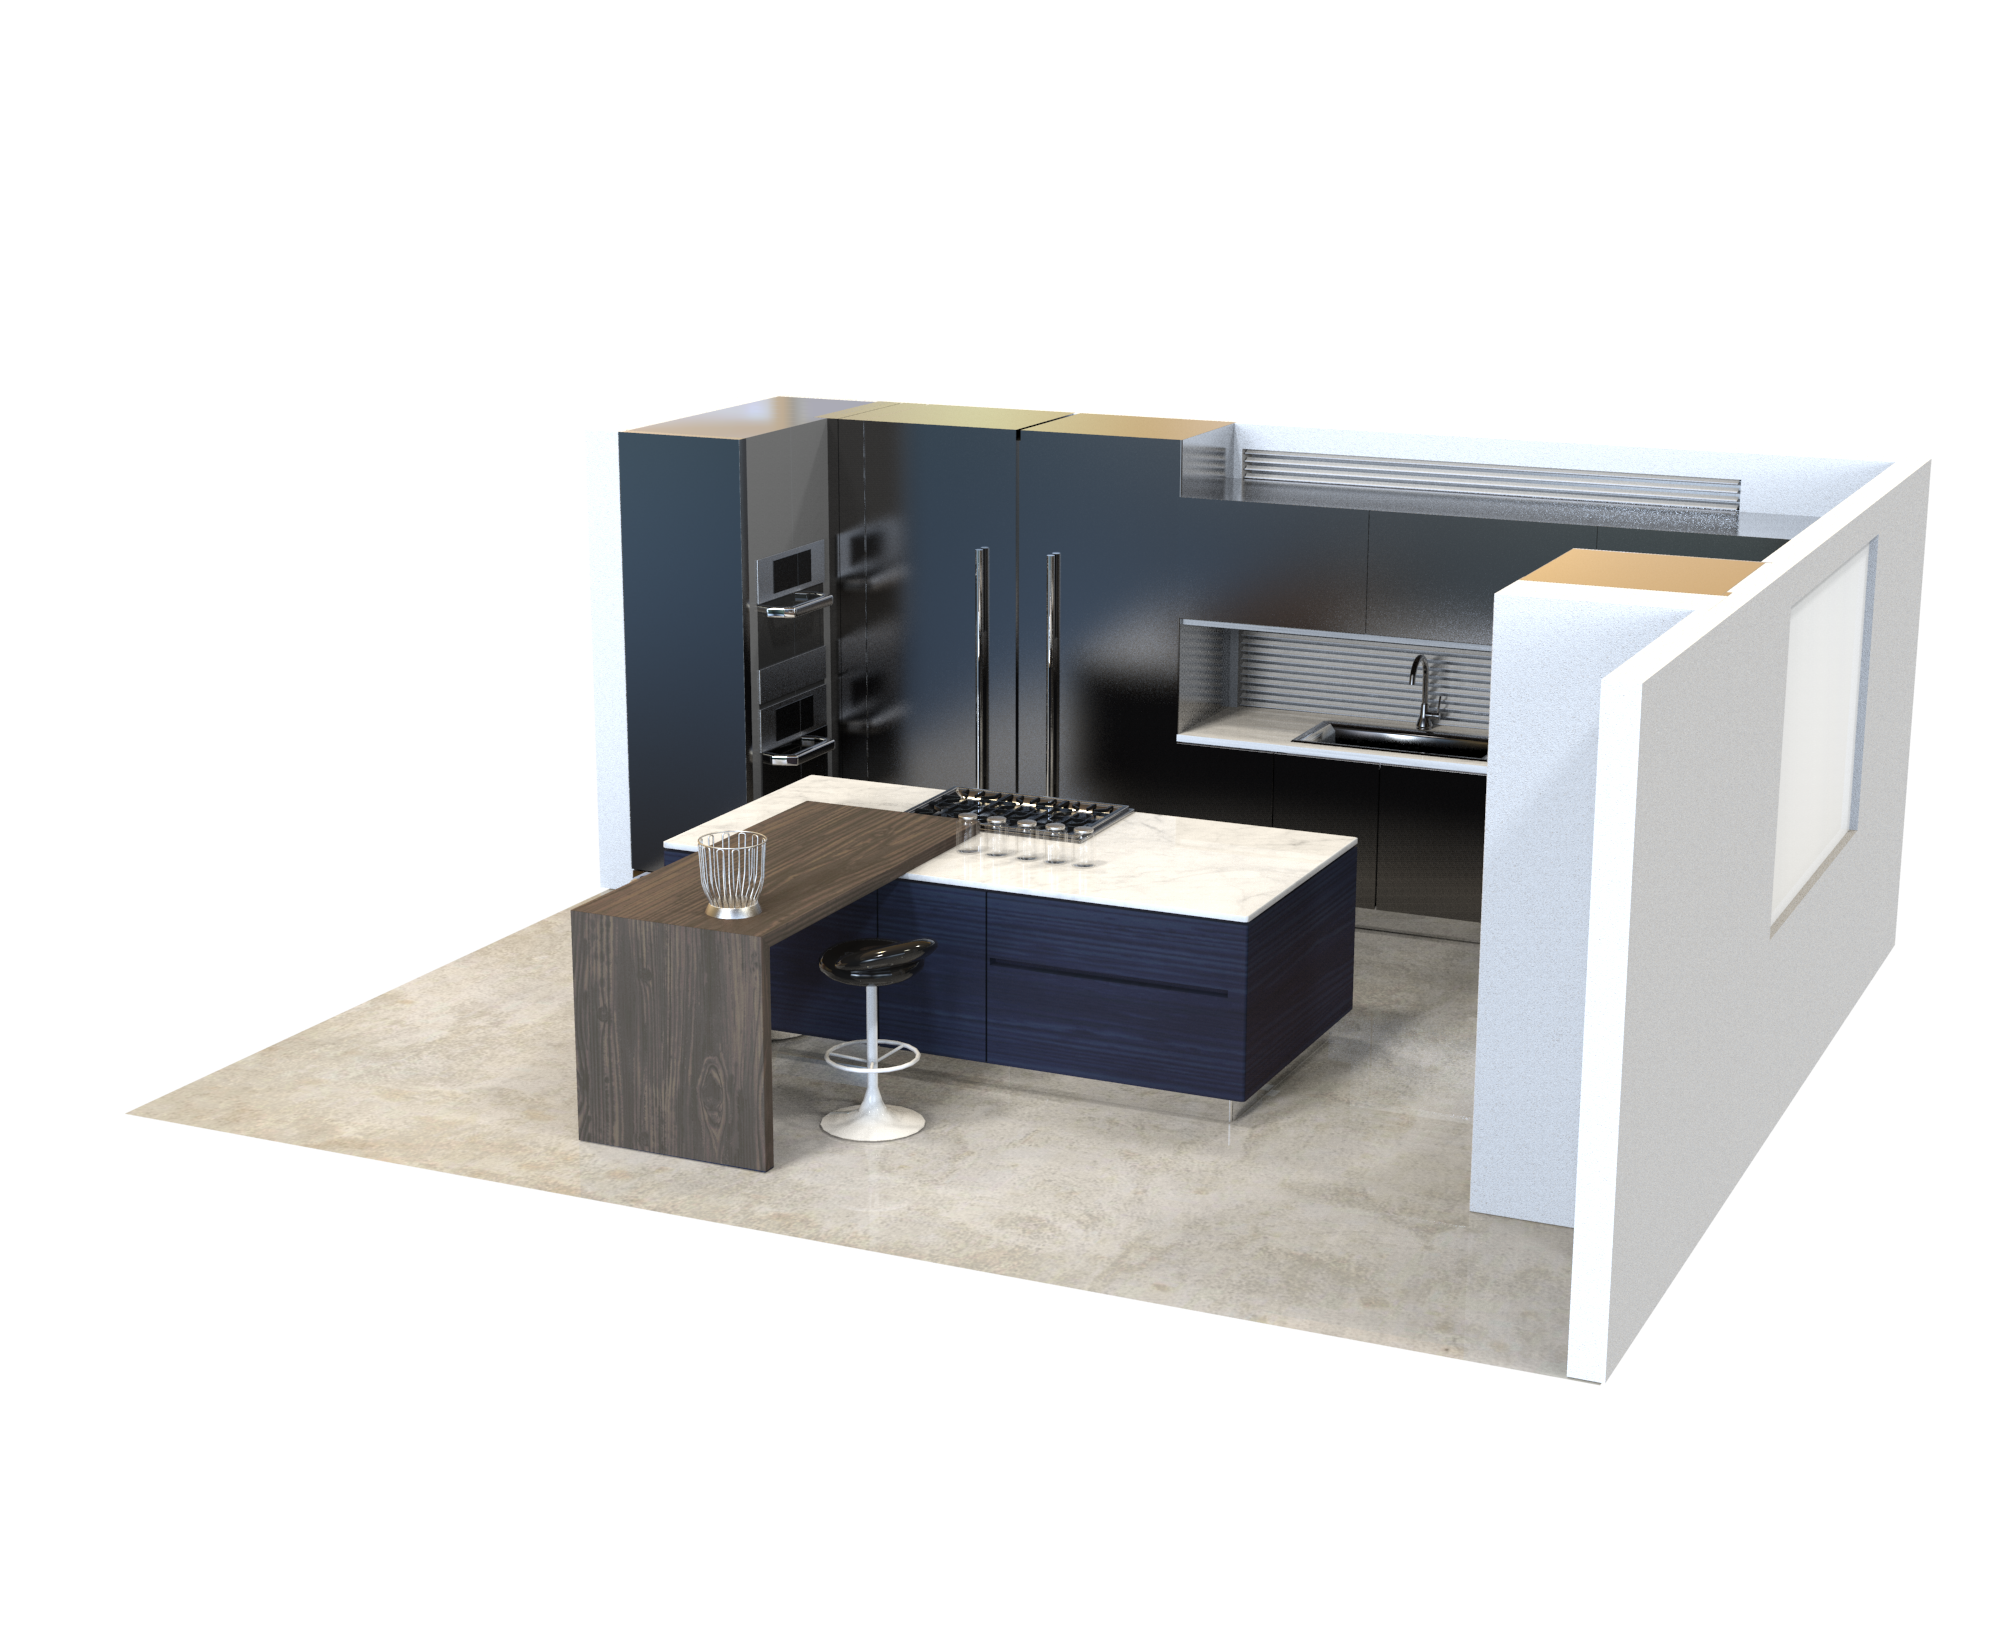 InteriorKitchen.318.png